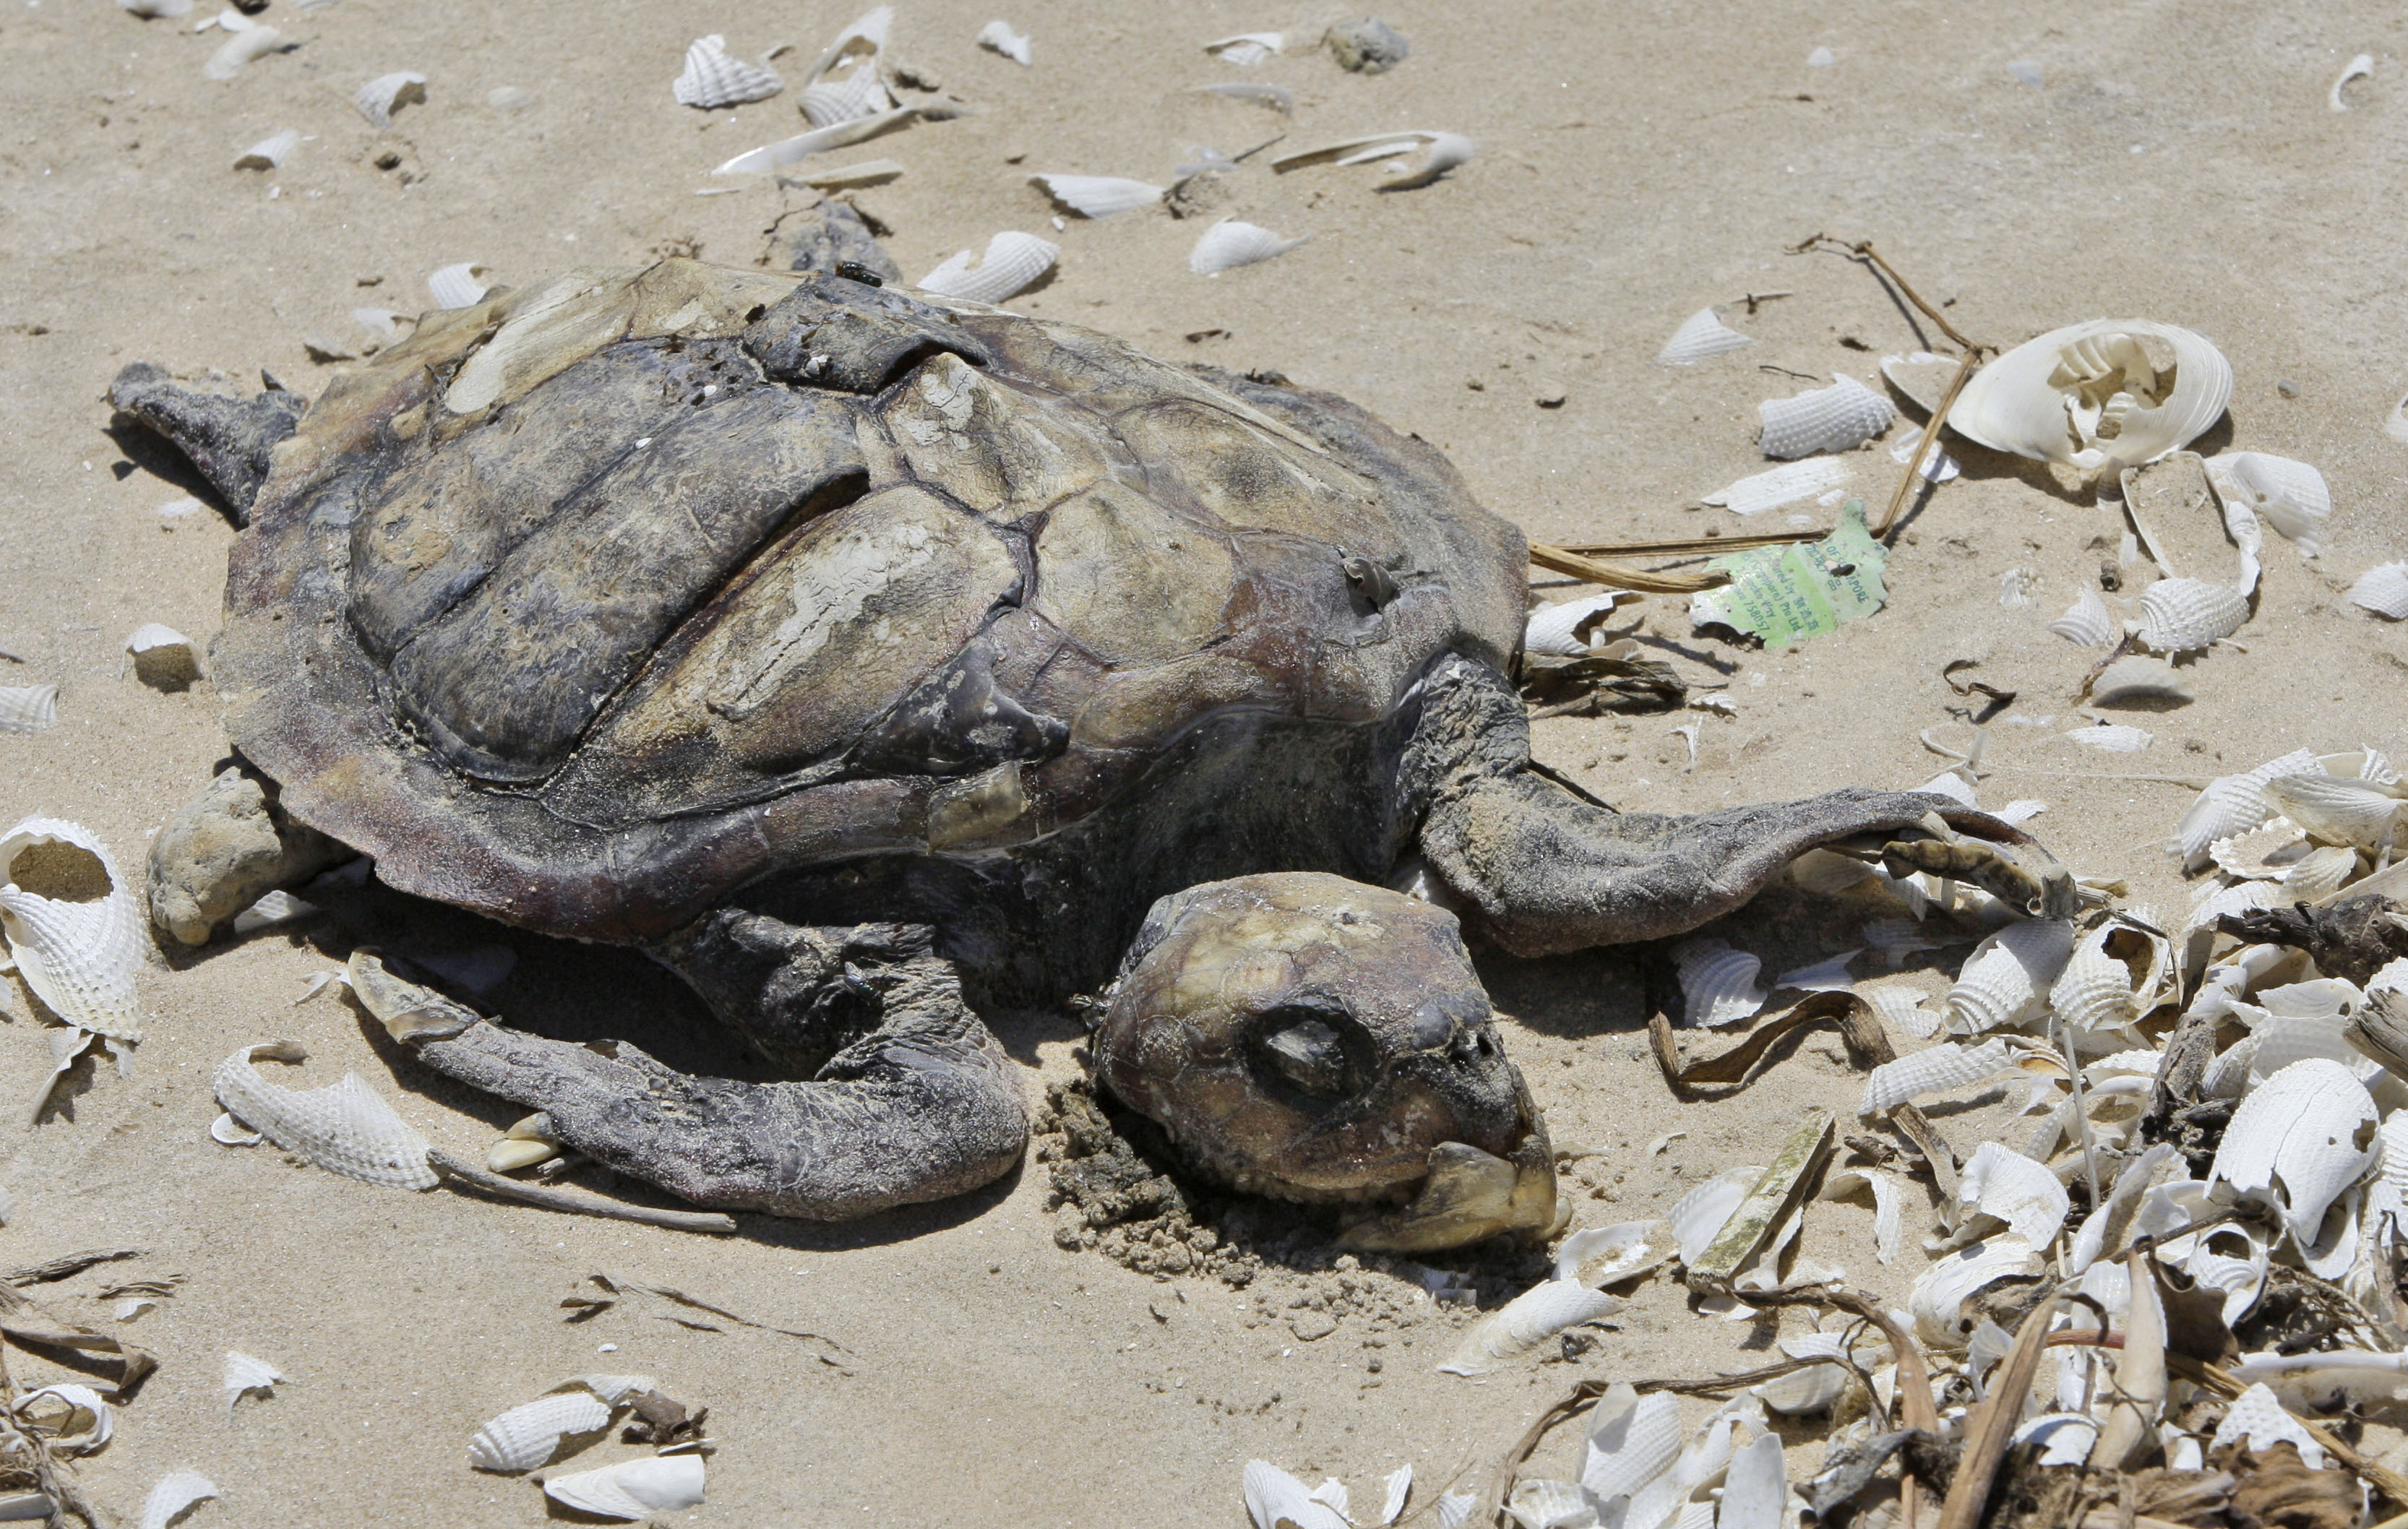 A decomposing Kemp's ridley turtle lies amid broken shells and debris in 2010 on the Bolivar Peninsula, Texas. A third of all marine mammals face extinction from habitat loss and unsustainable fishing, according to the UN report.